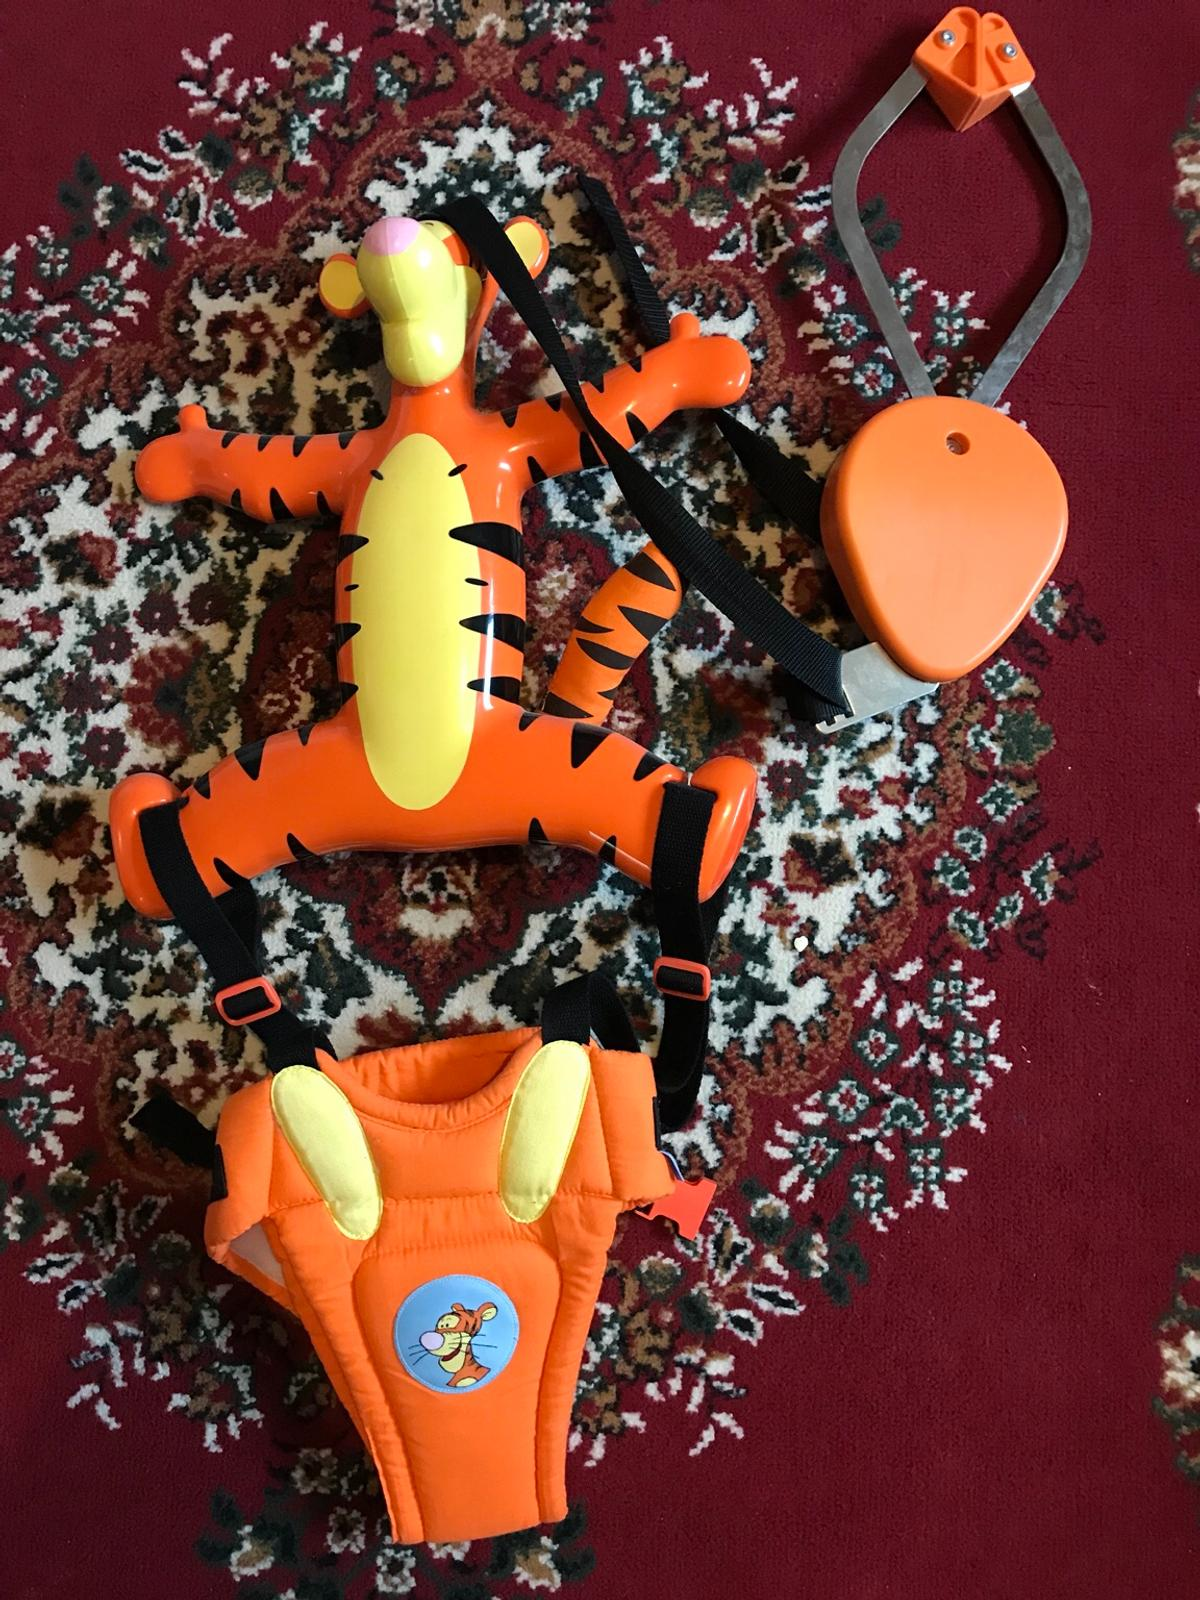 Tigger door bouncer great used condition. Collect ASAP thank you 😊